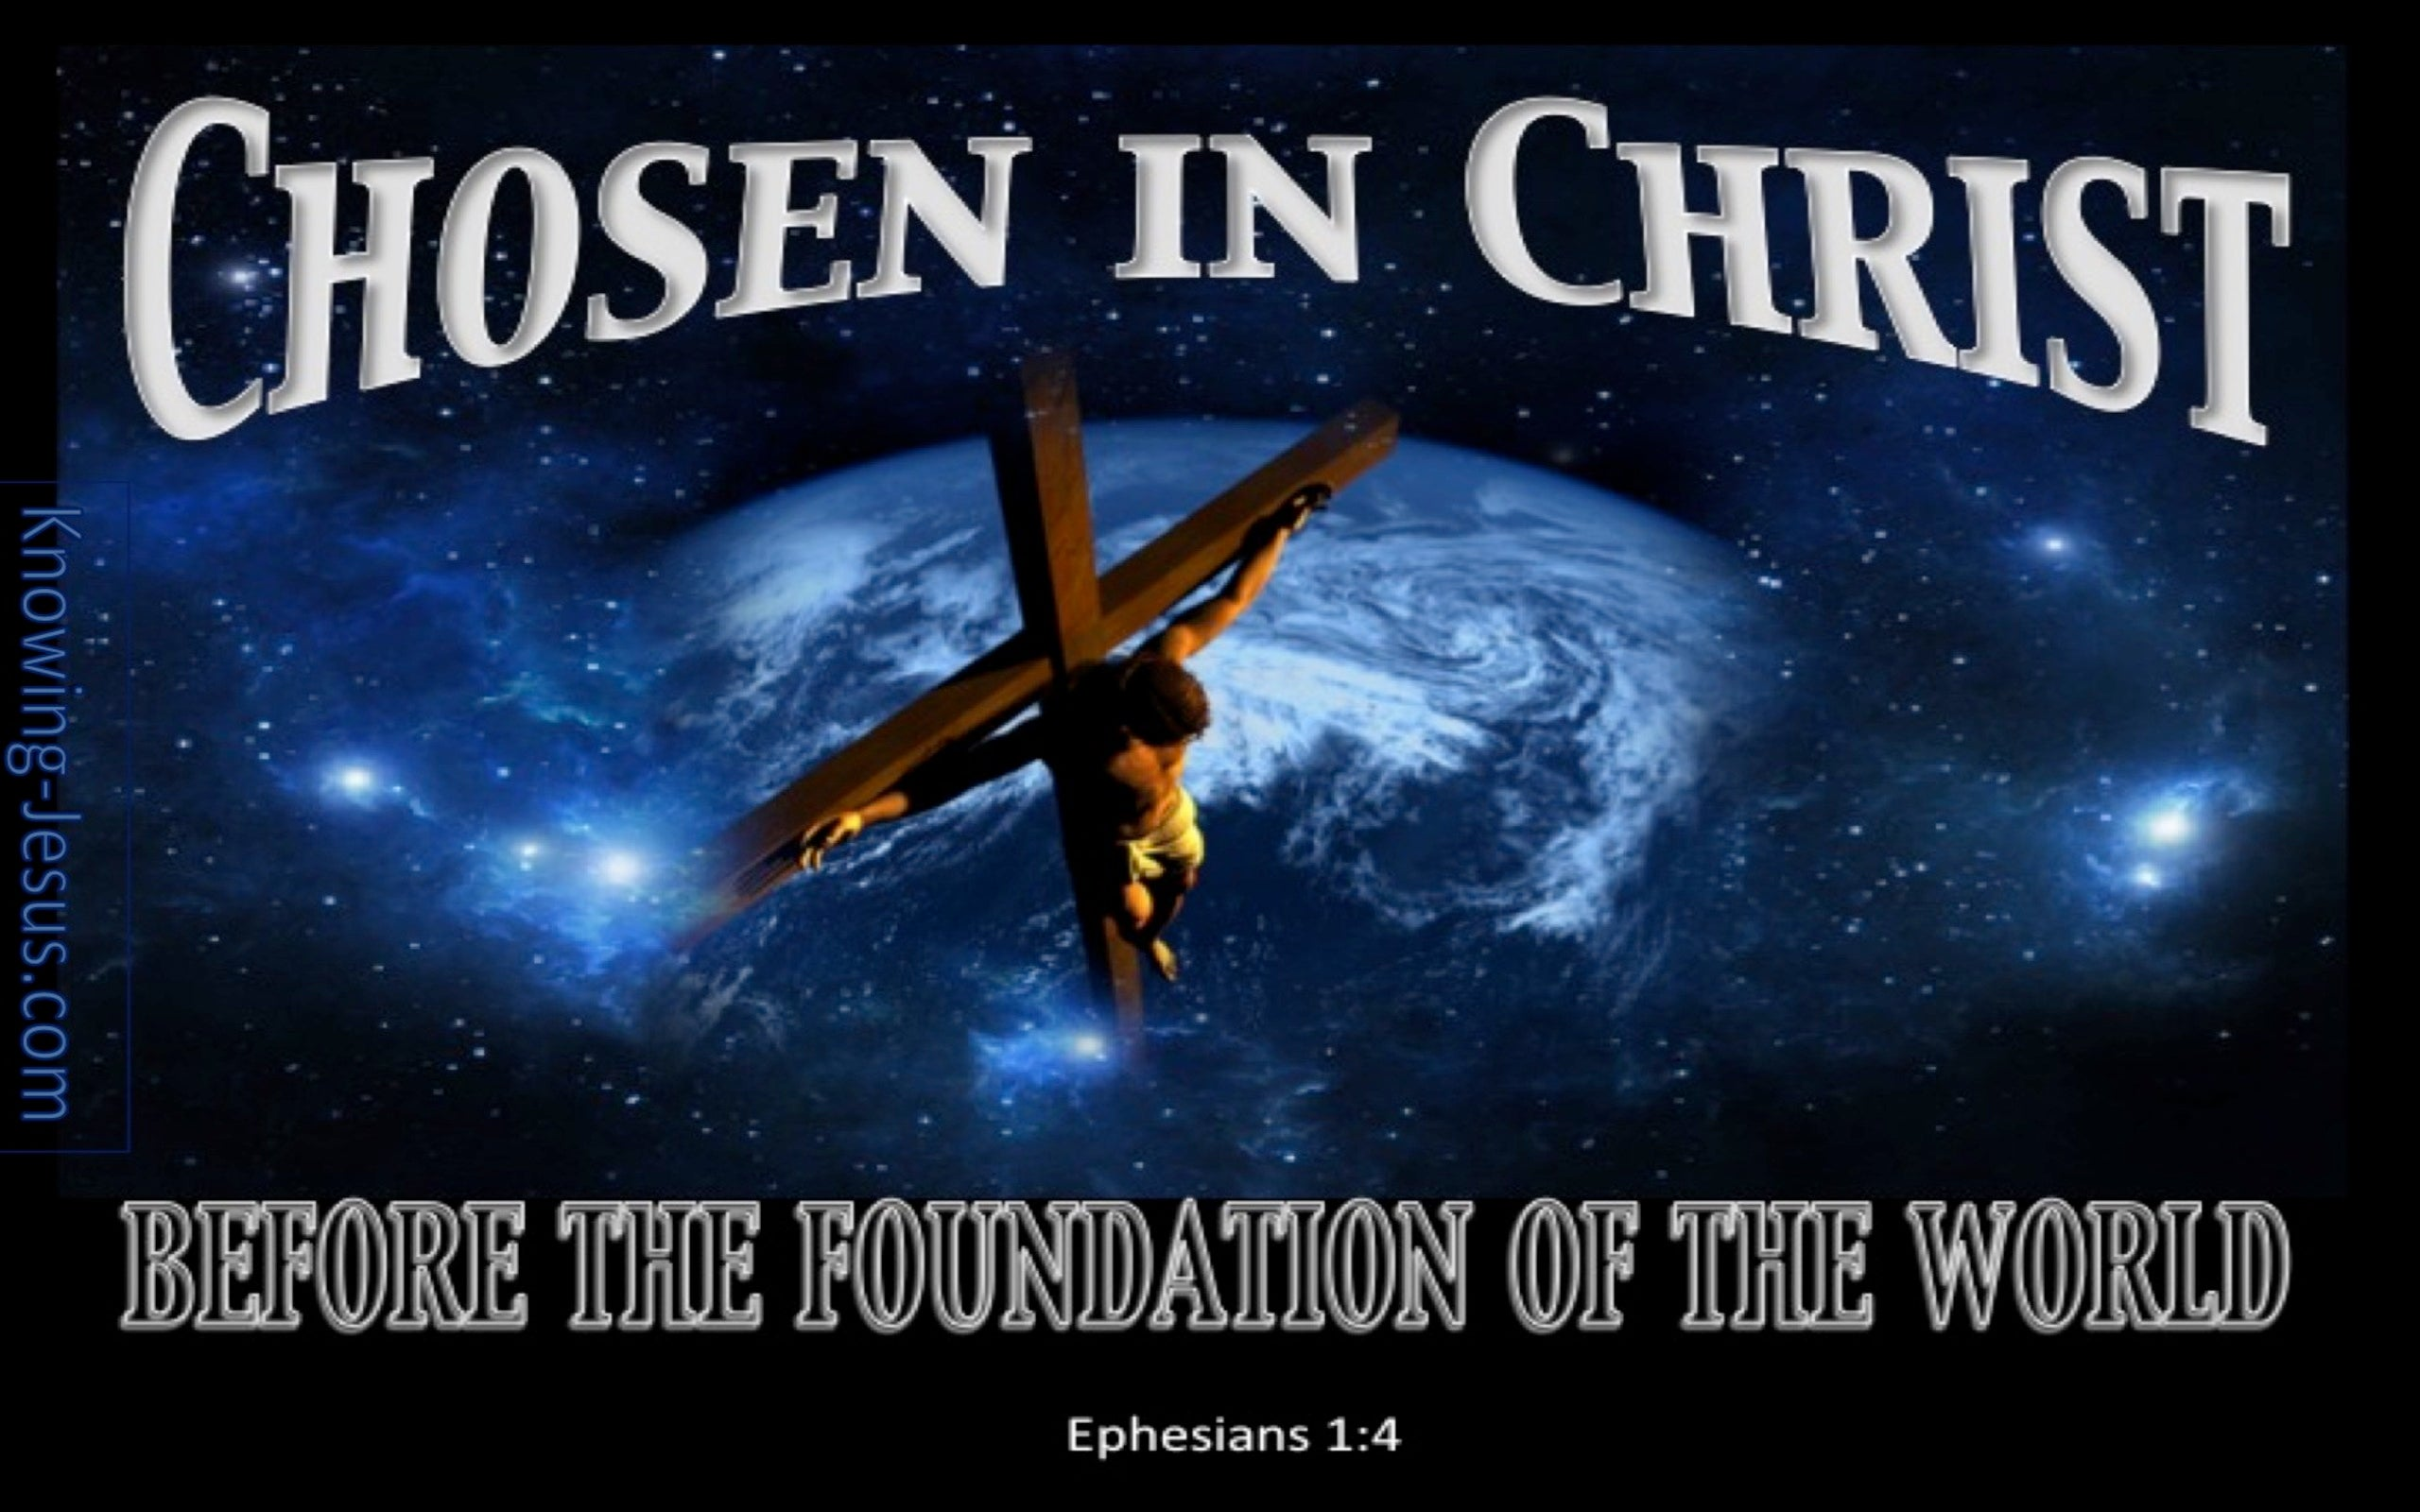 Ephesians 1:4 Chosen In Christ (blue)